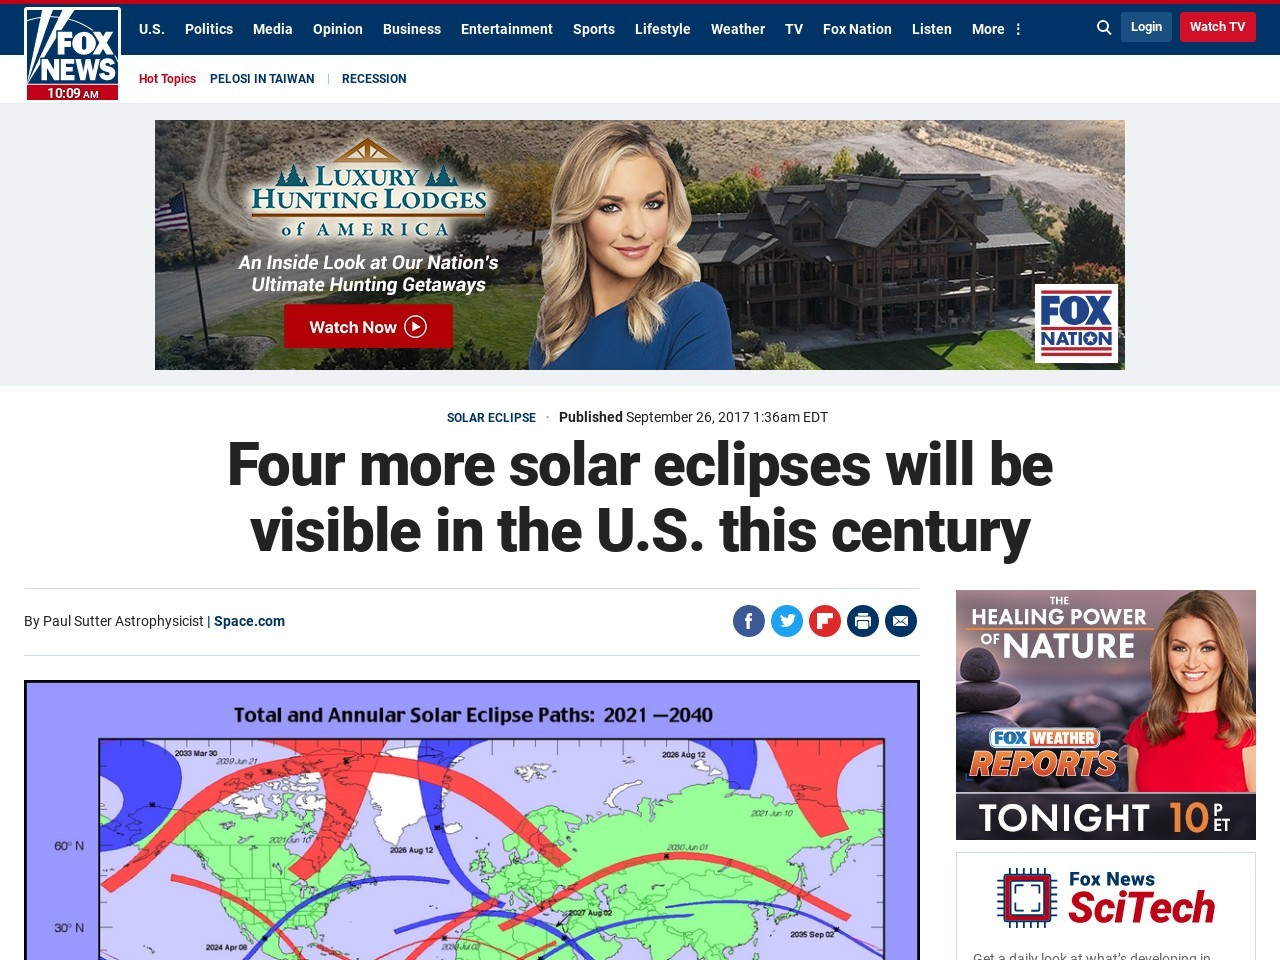 Four more solar eclipses will be visible in the U.S. this century